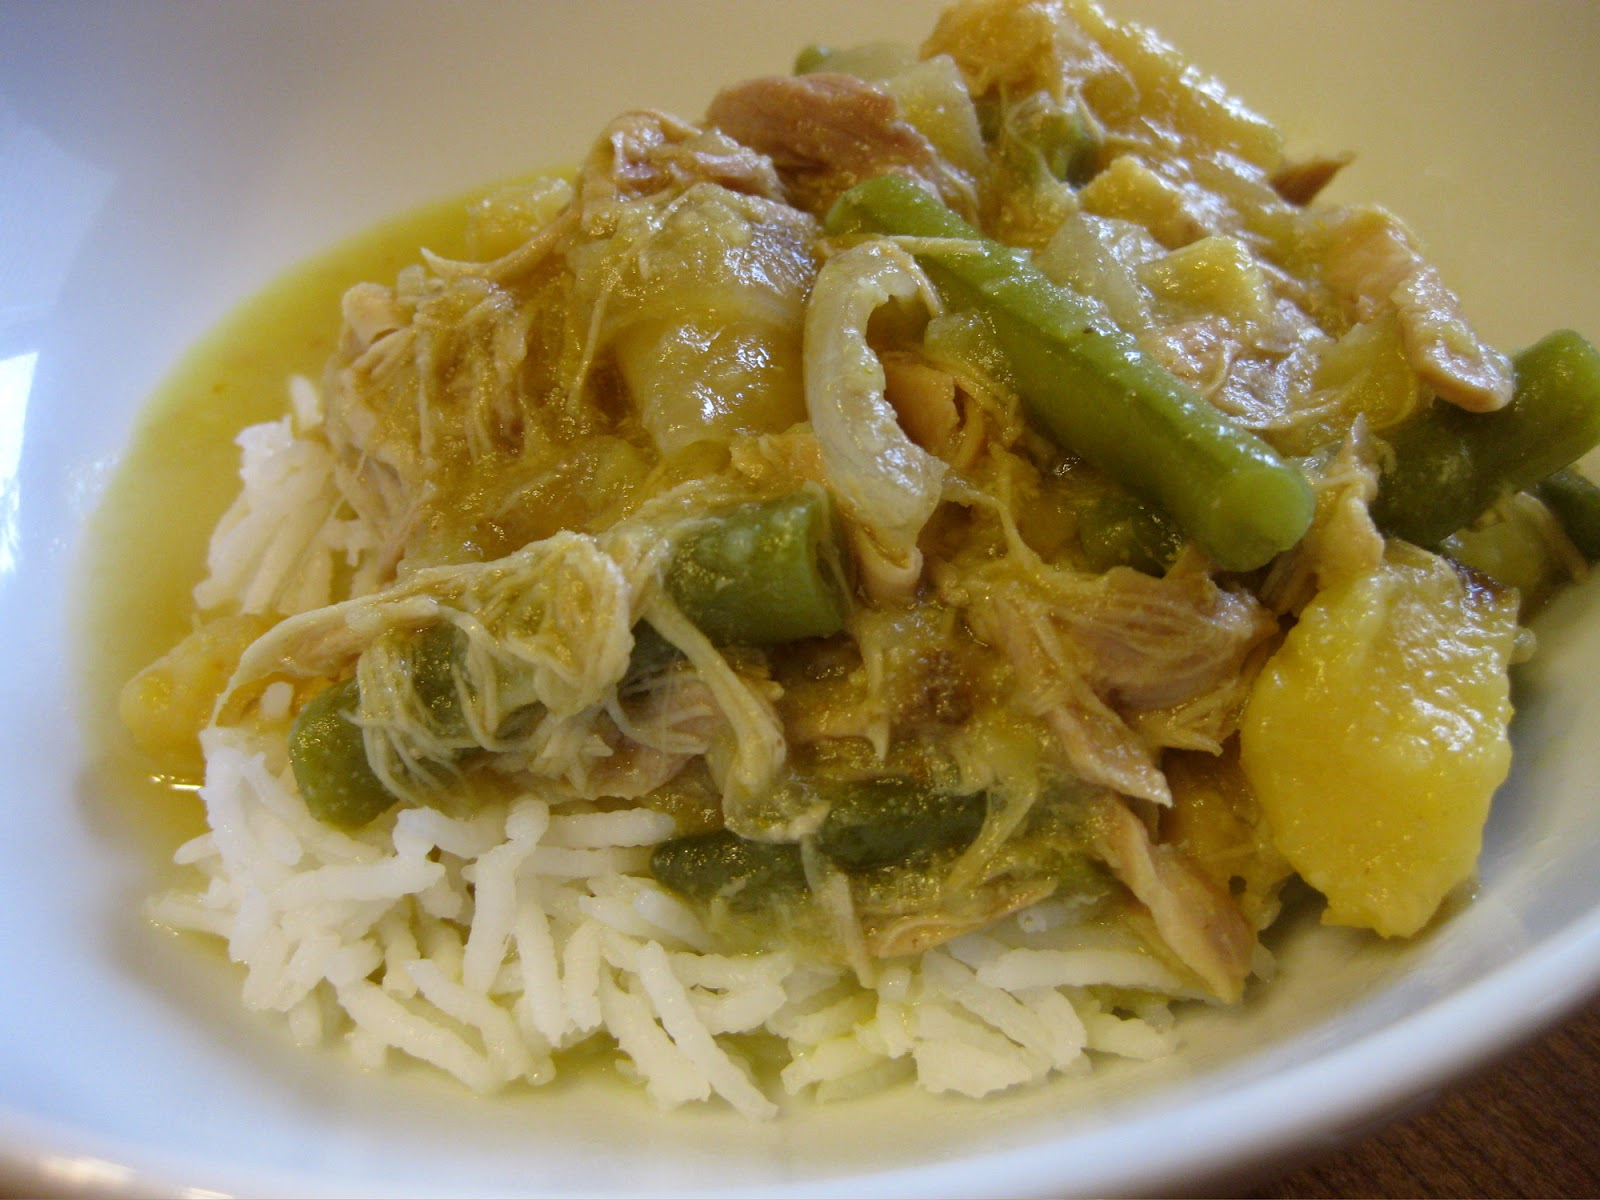 Oishikatta 美味しかった: Slow Cooker Yellow Thai Curry Chicken ...